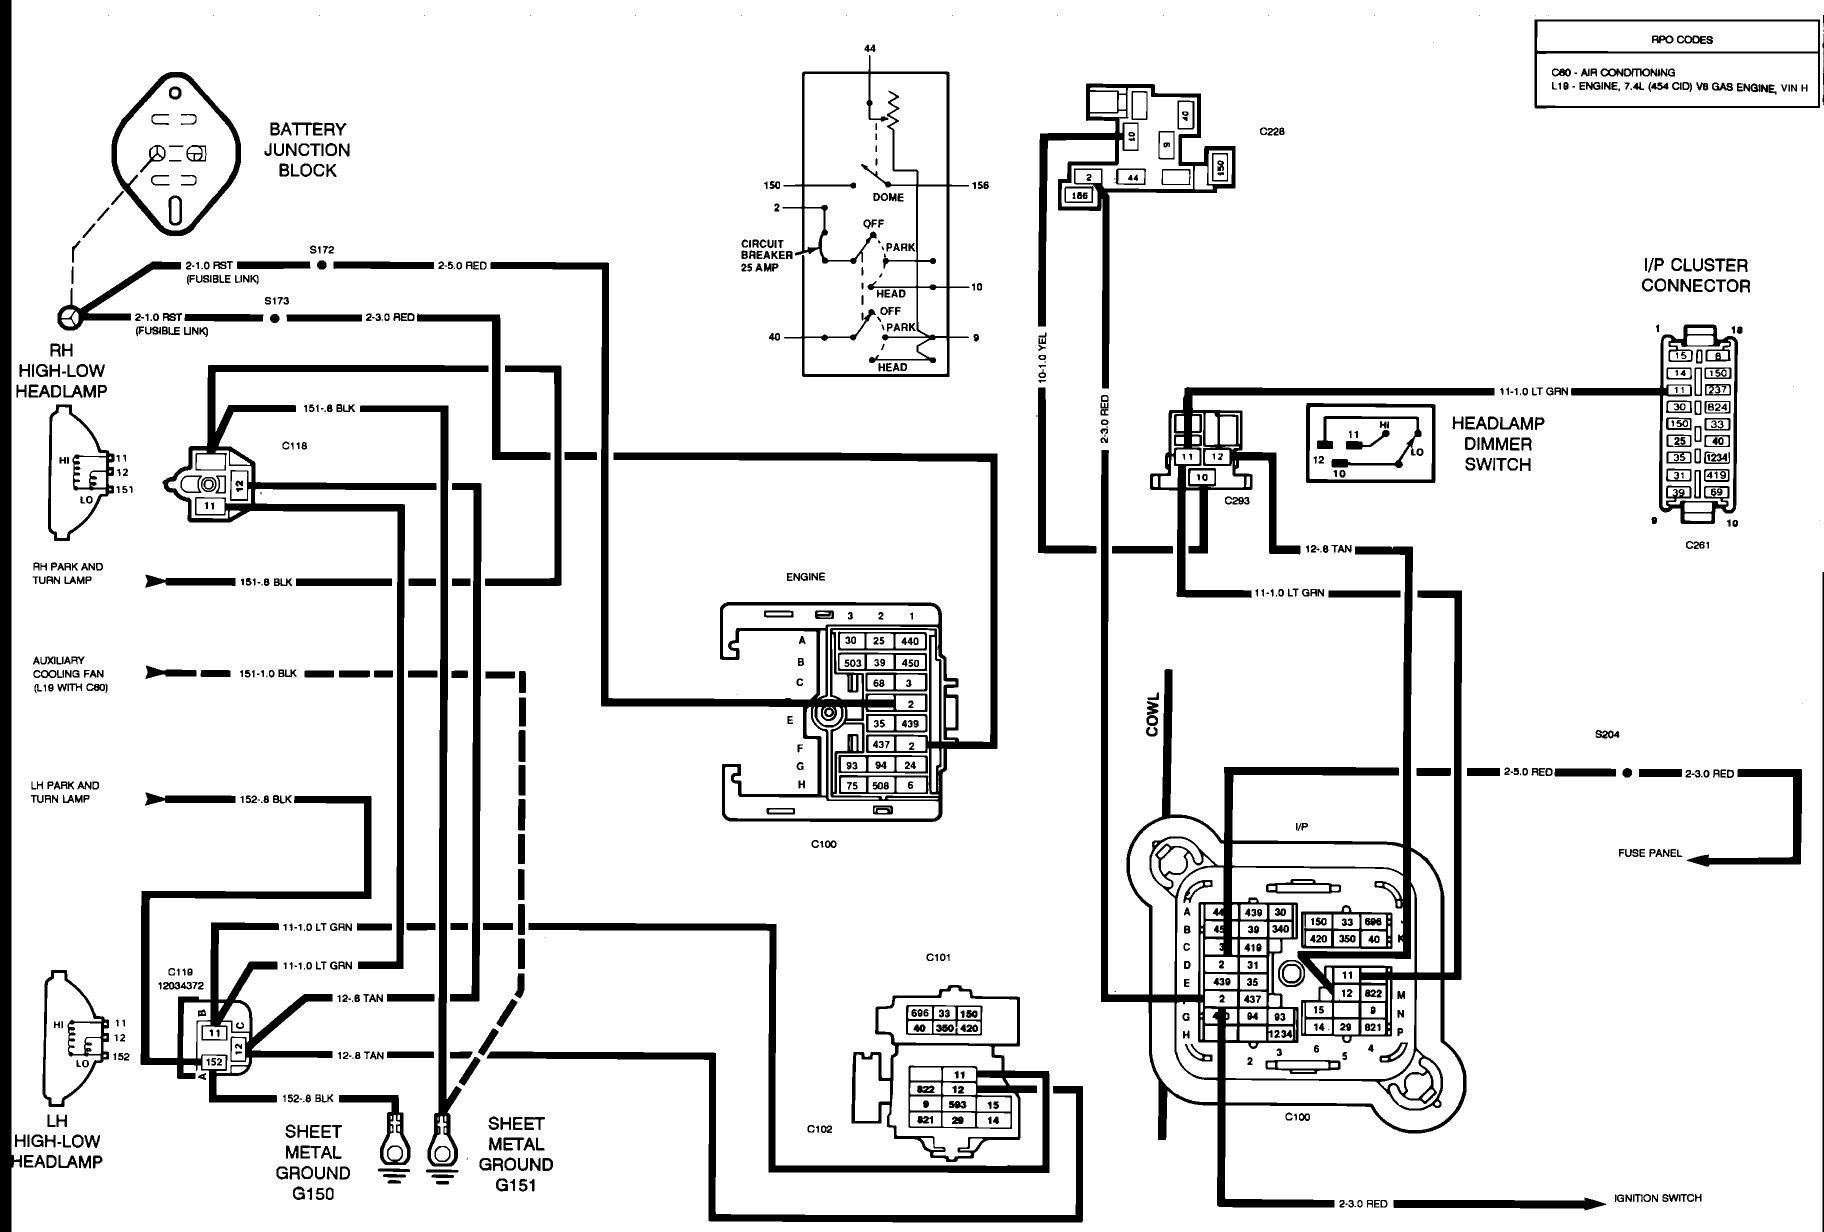 New Vw Golf 4 Central Locking Wiring Diagram #diagram #